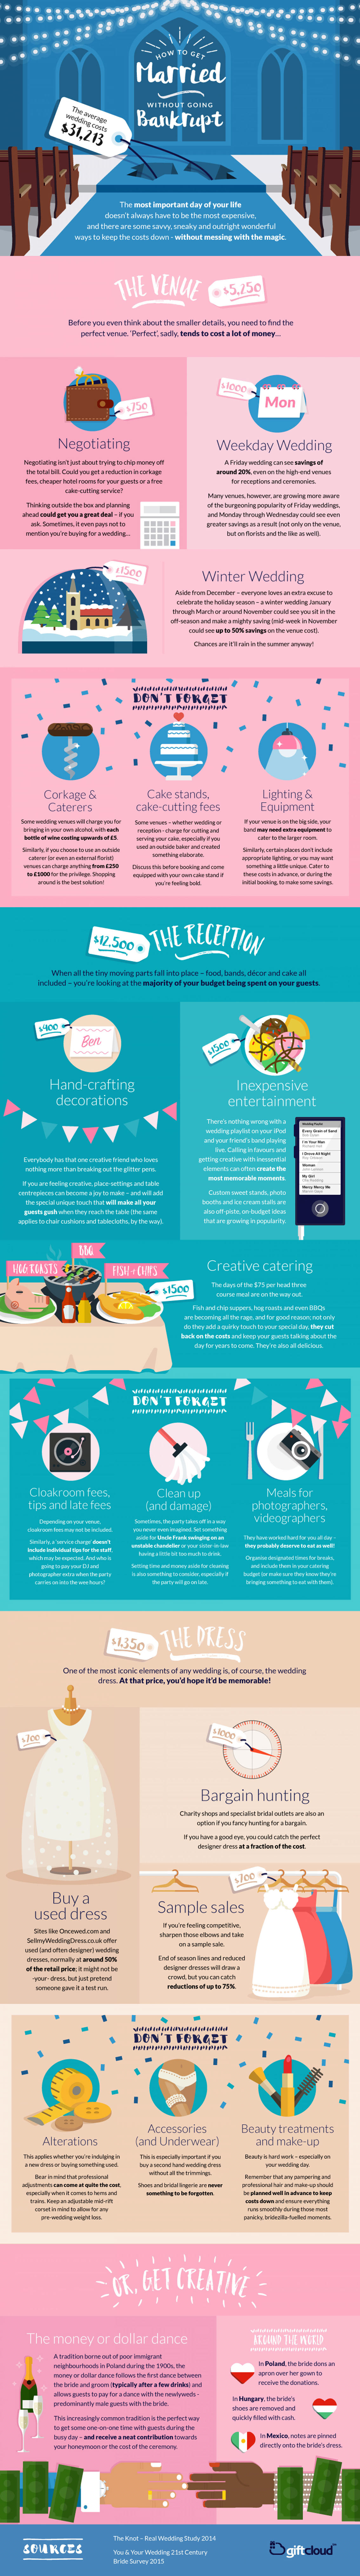 Wedding Ideas on a Tight Budget Infographic